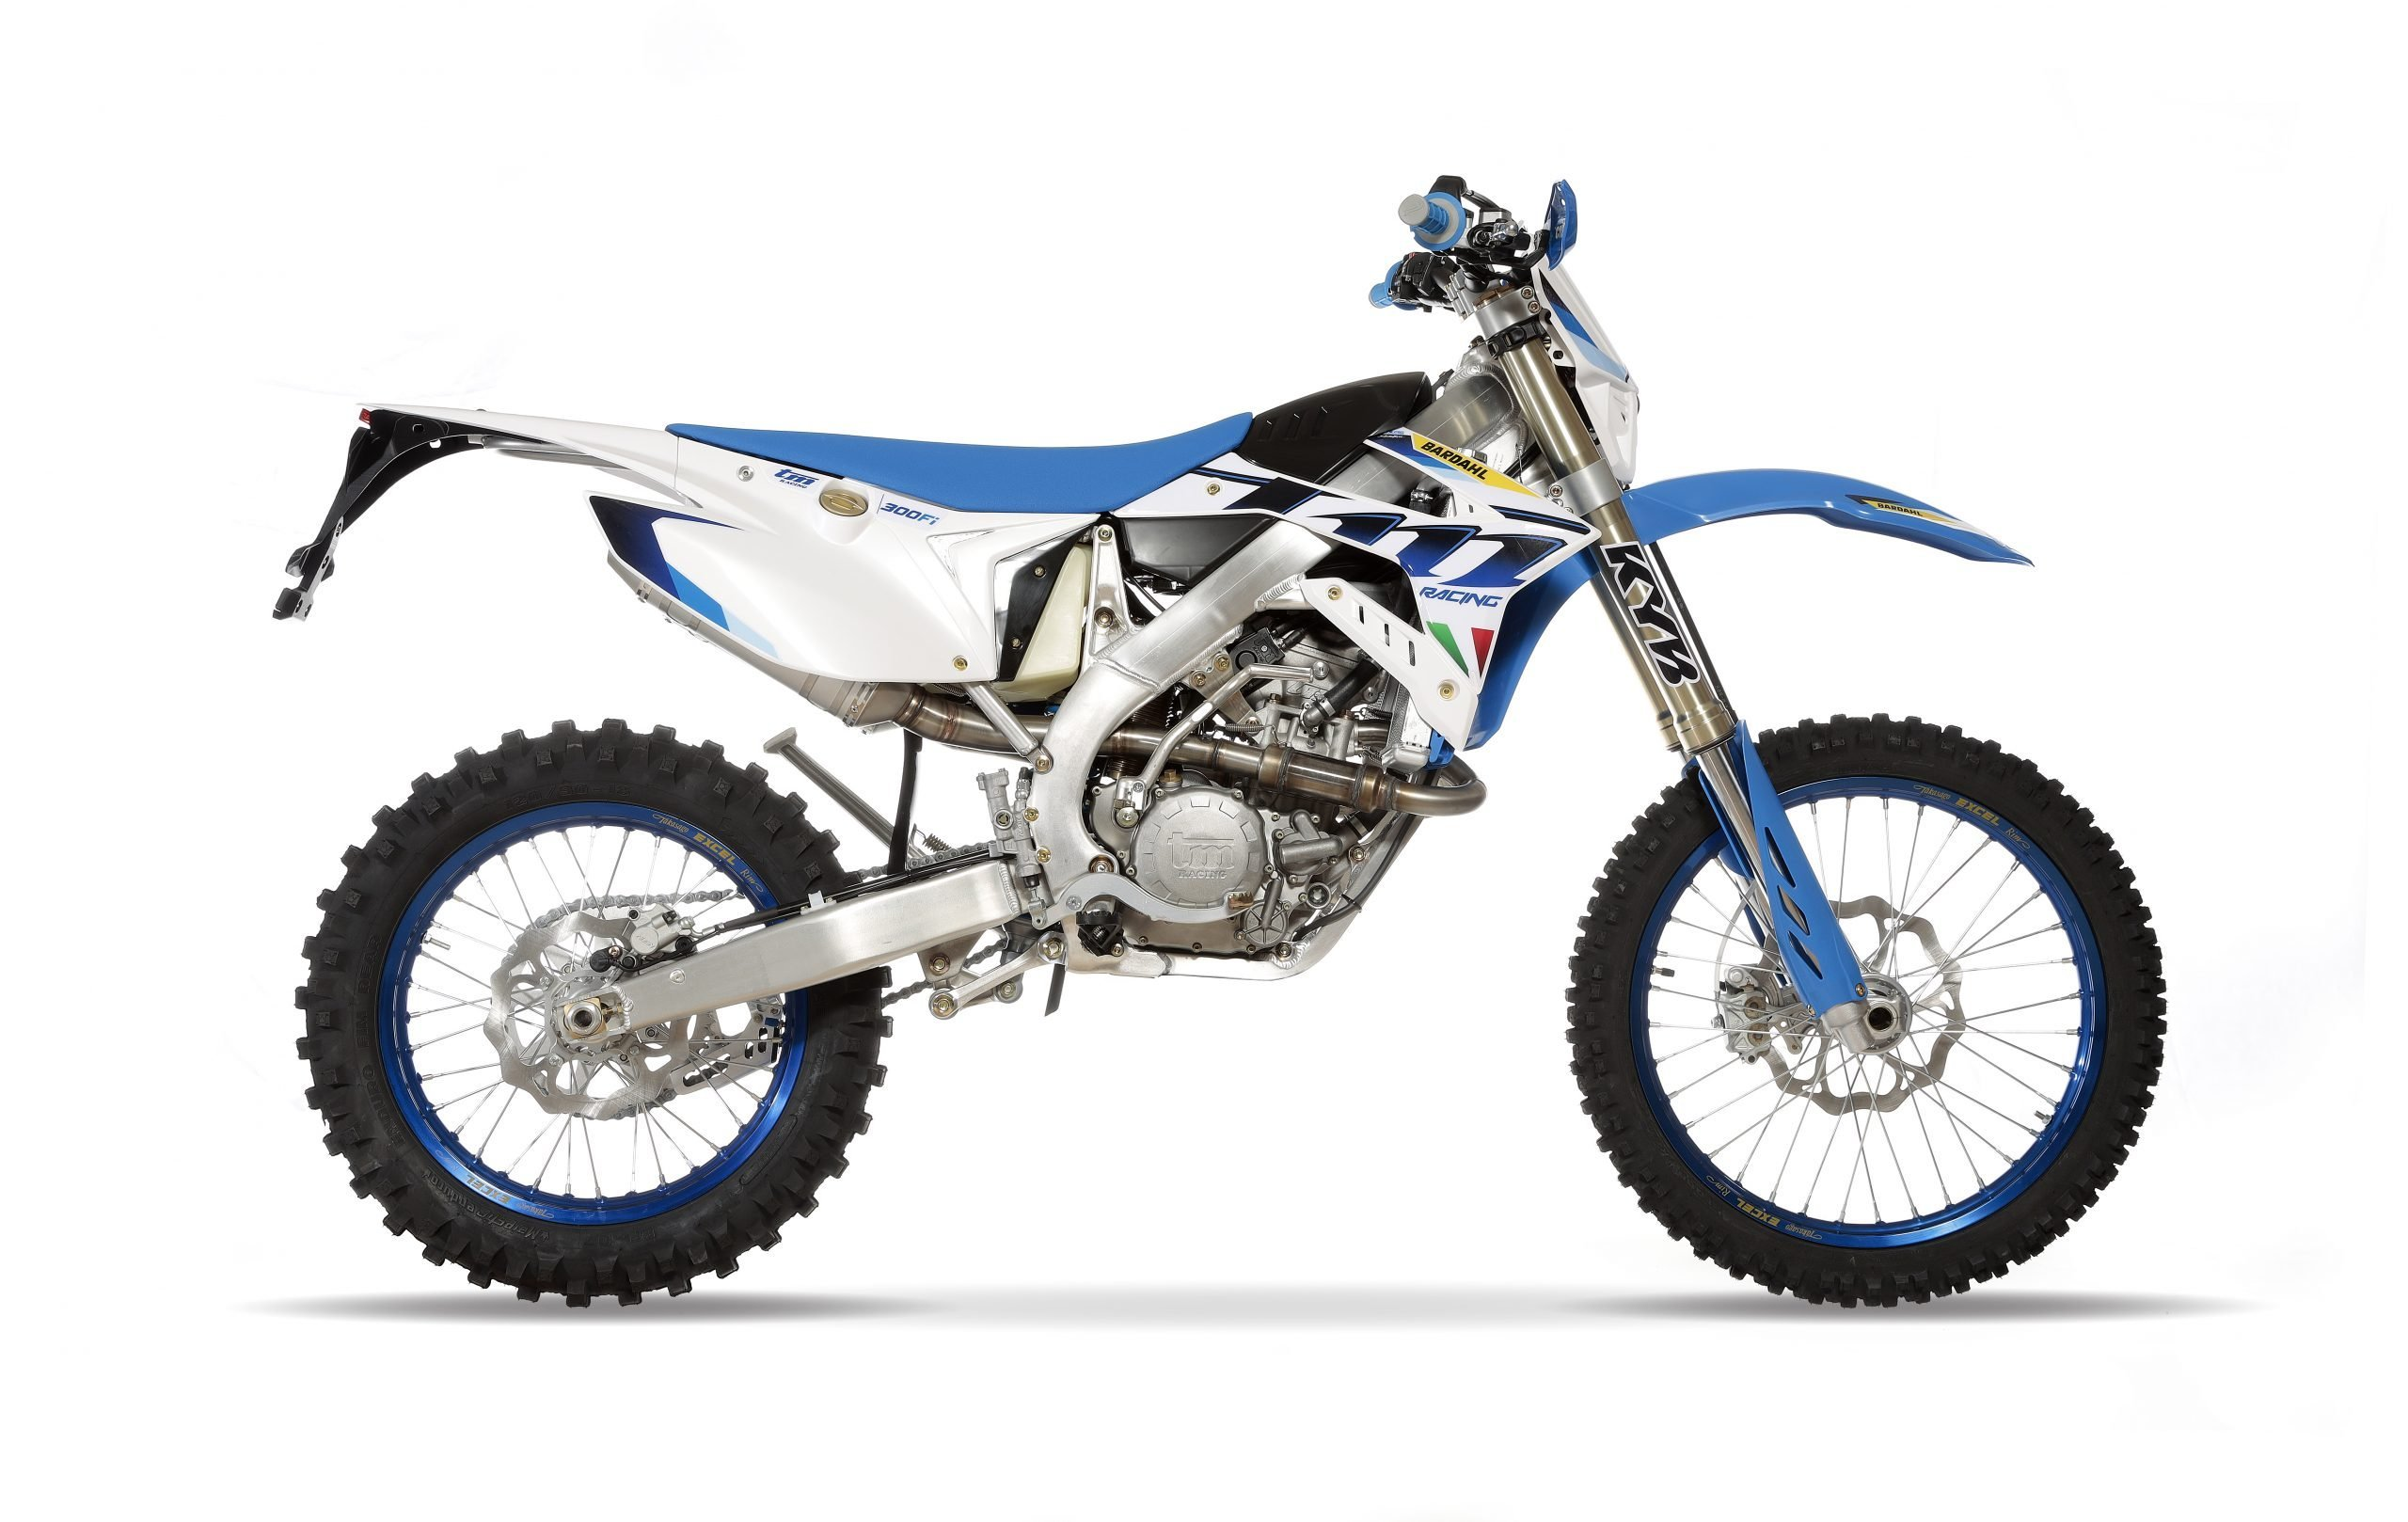 TM Racing 2021 Enduro 300 Fi 4T